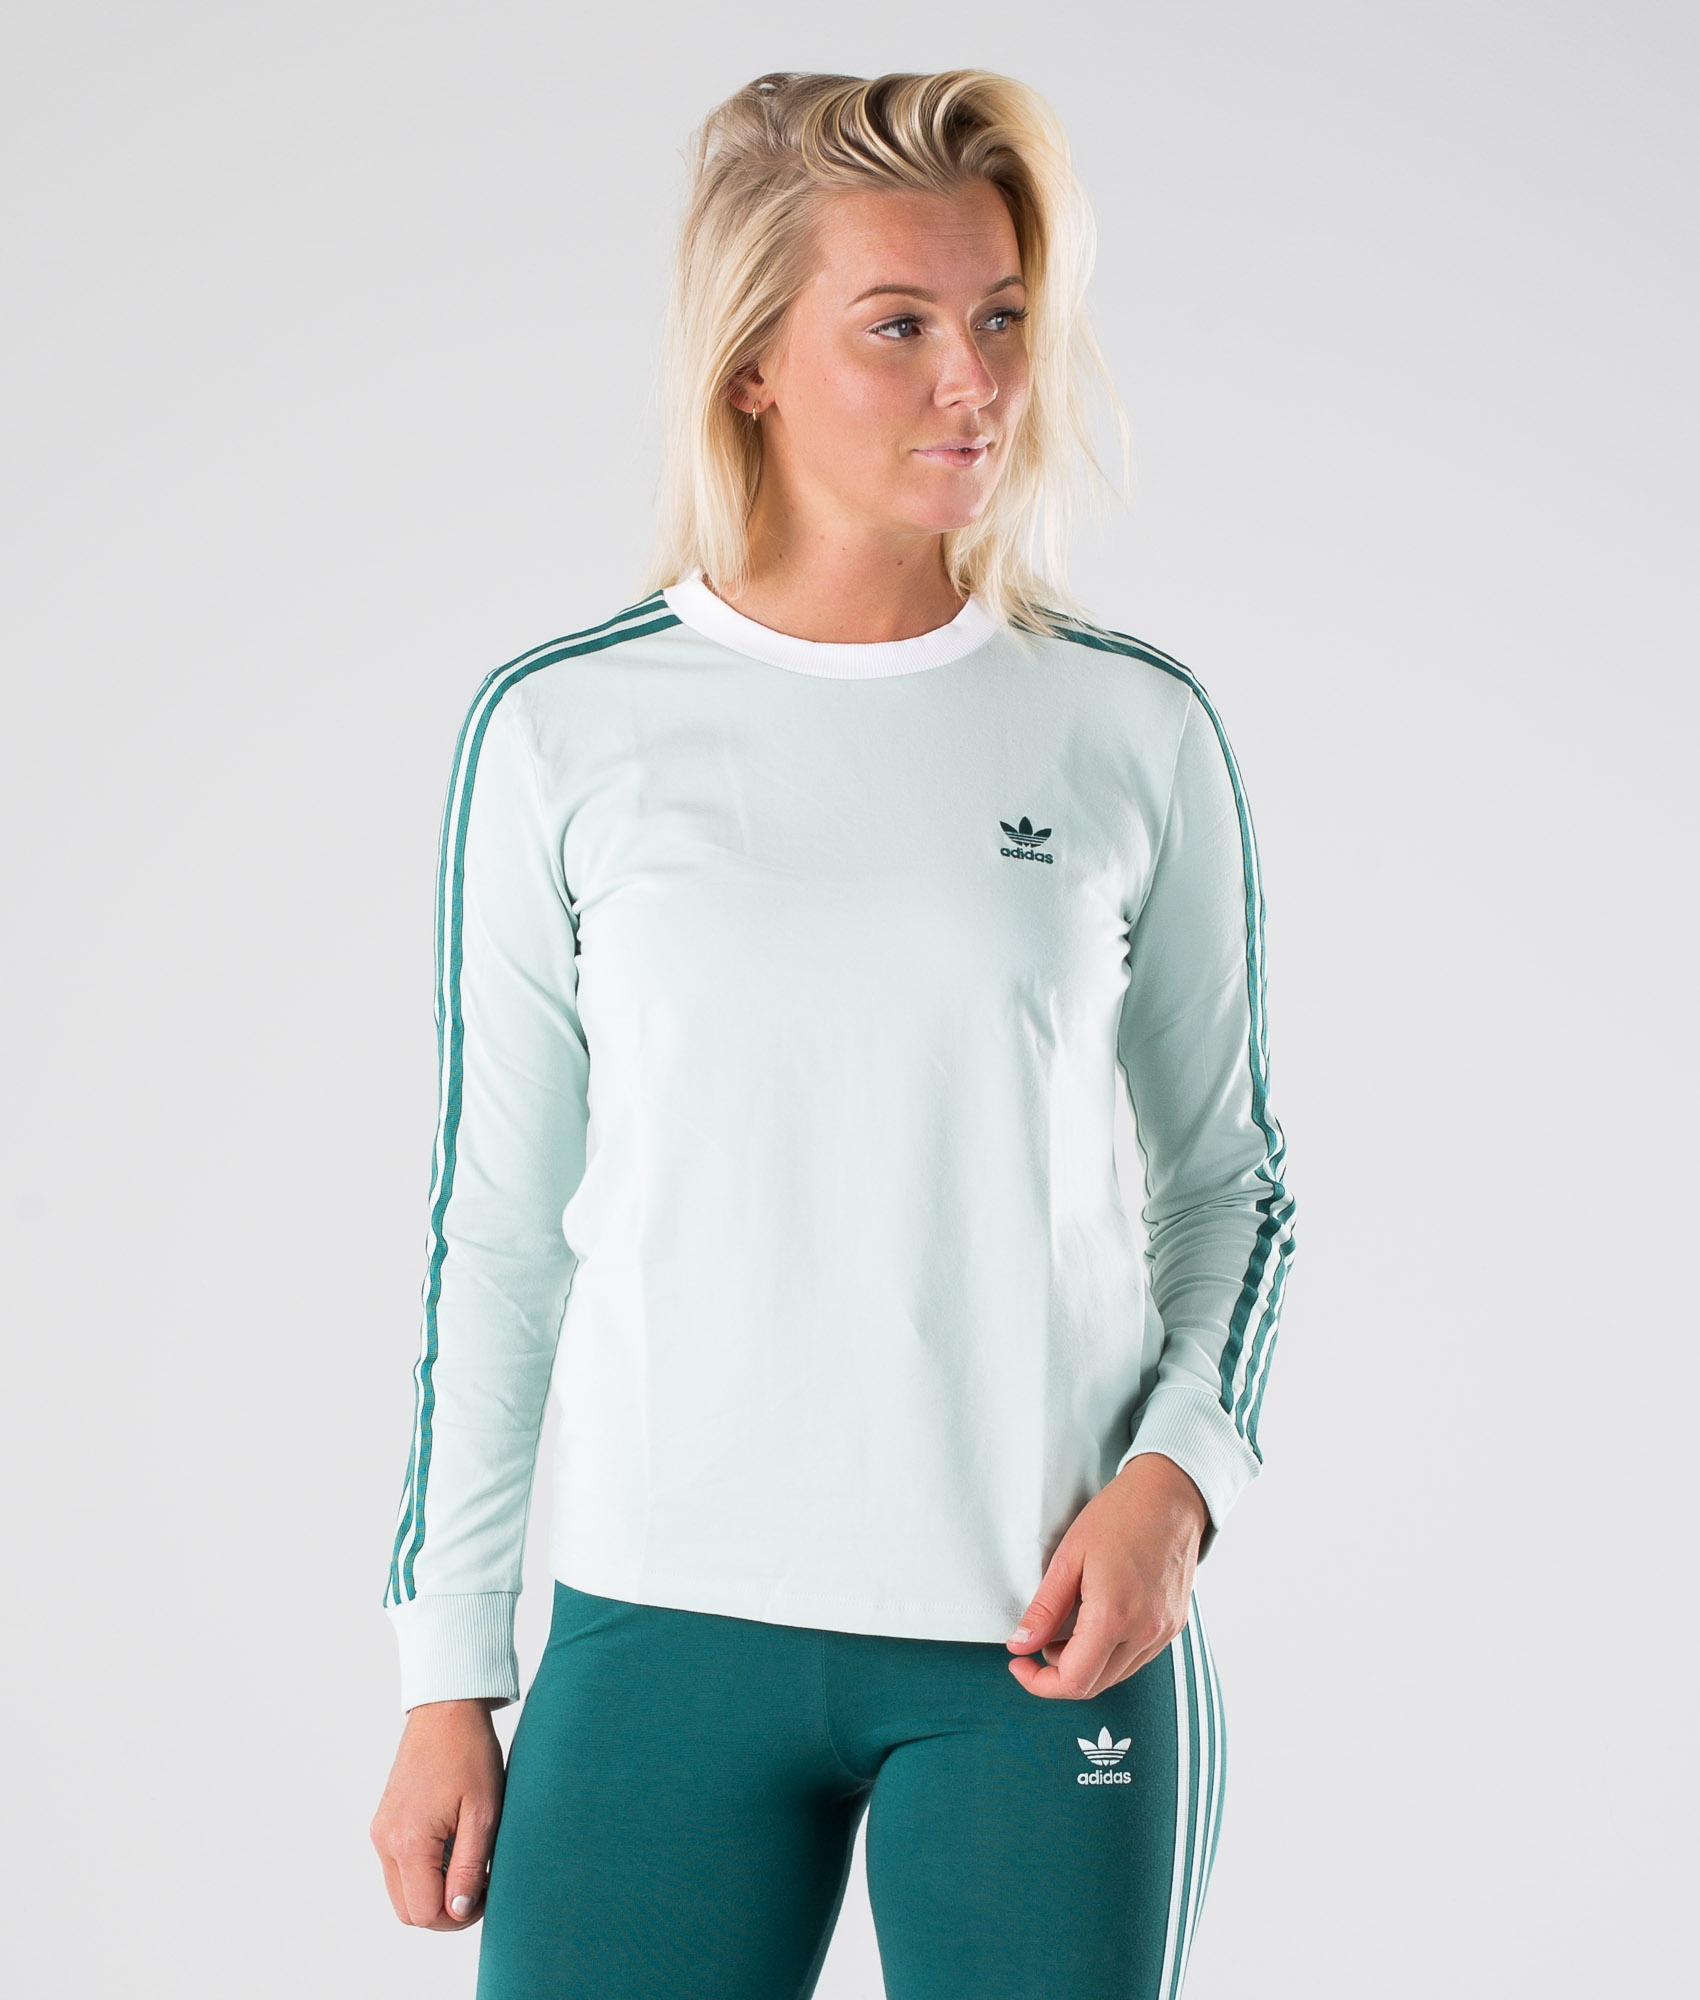 Adidas Originals 3 Stripes Long Sleeve Tee Longsleeve Vapour Green